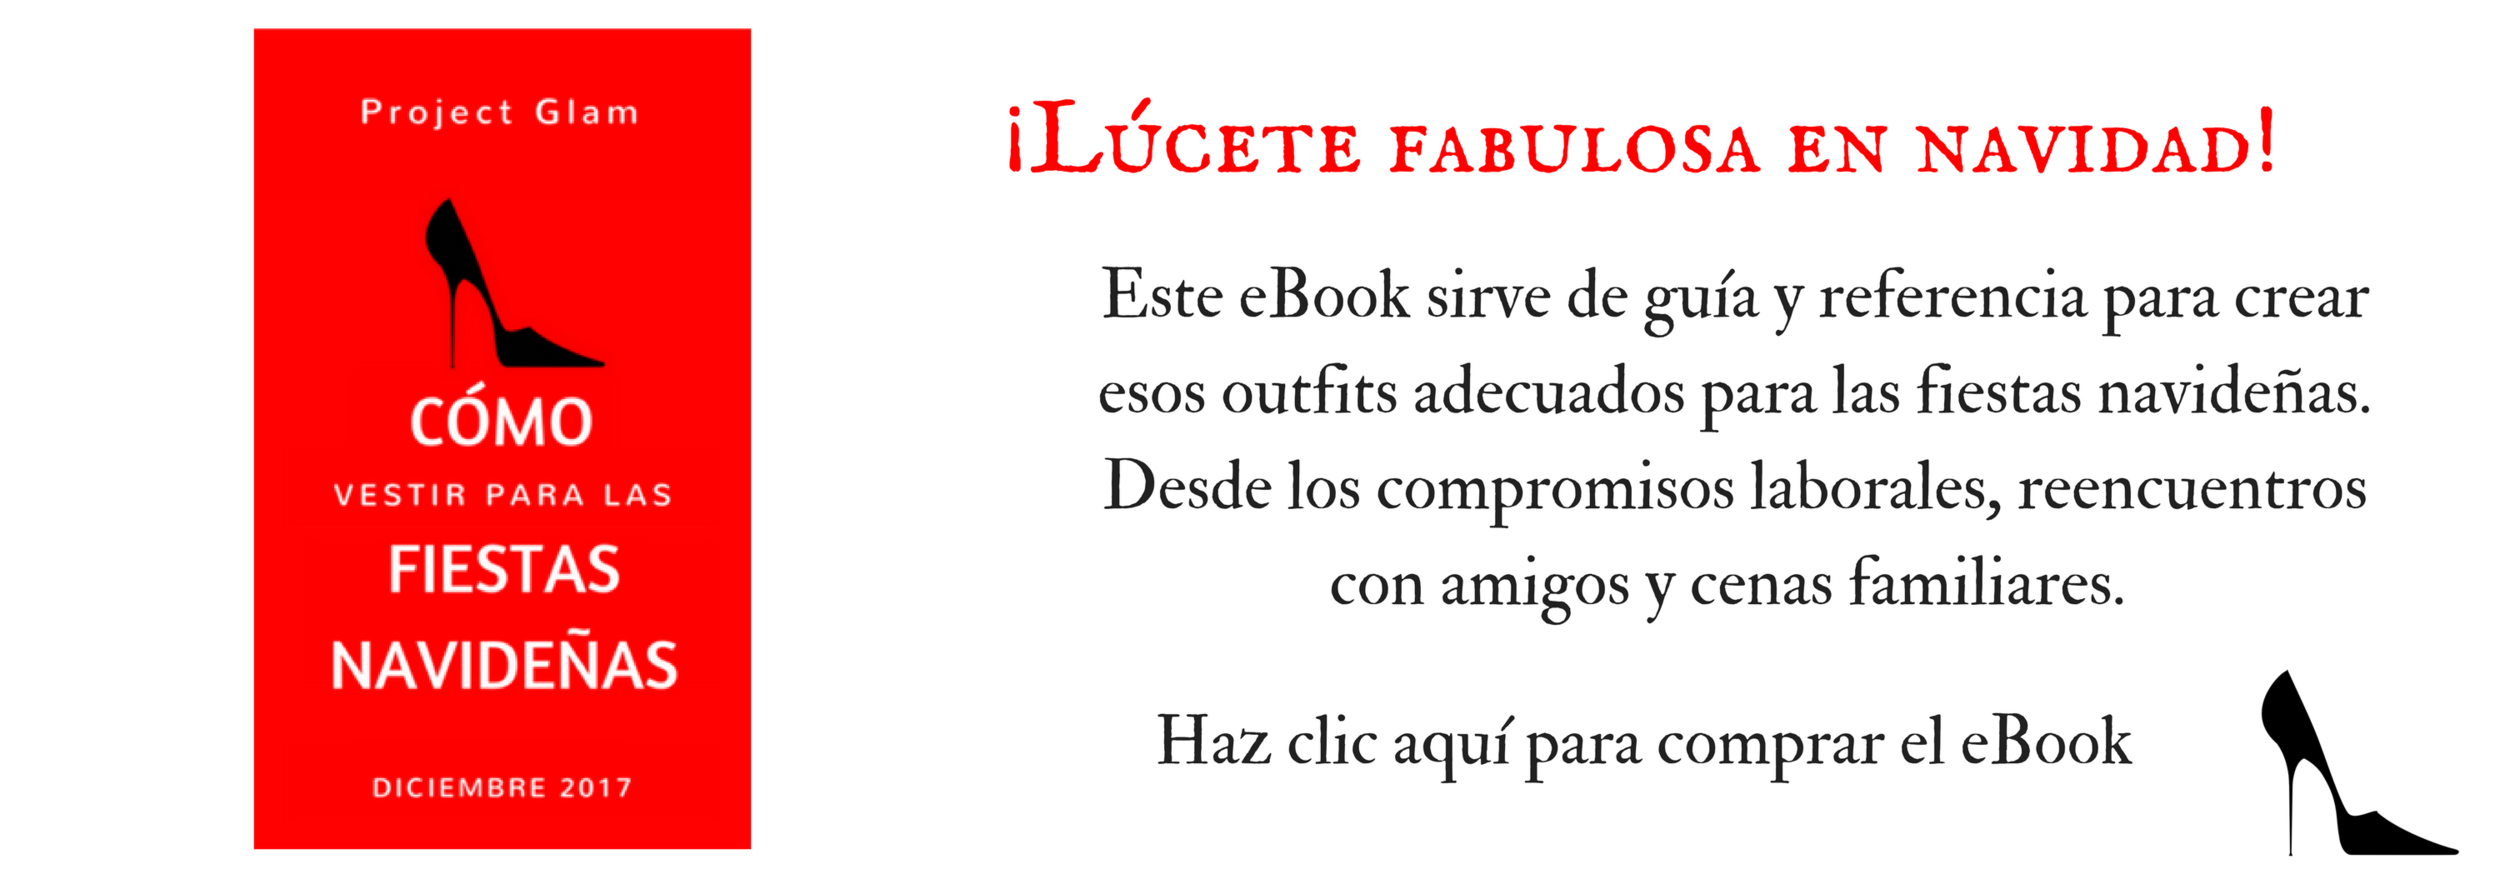 Banners - cursos (3).png